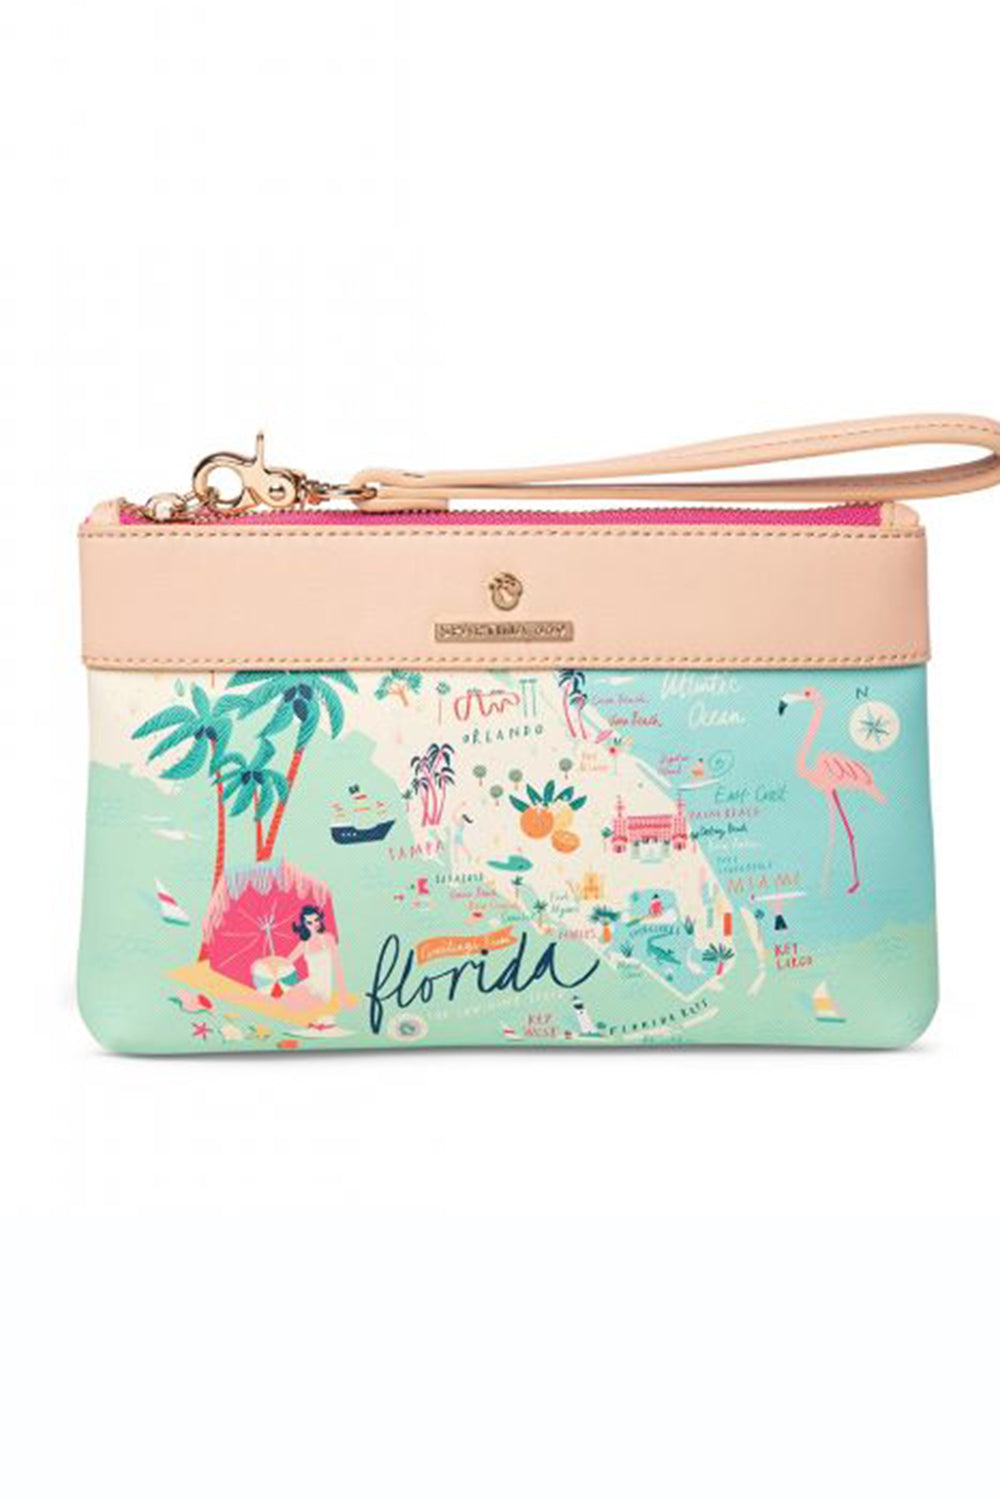 Destination Map Scouty Wristlet - Florida